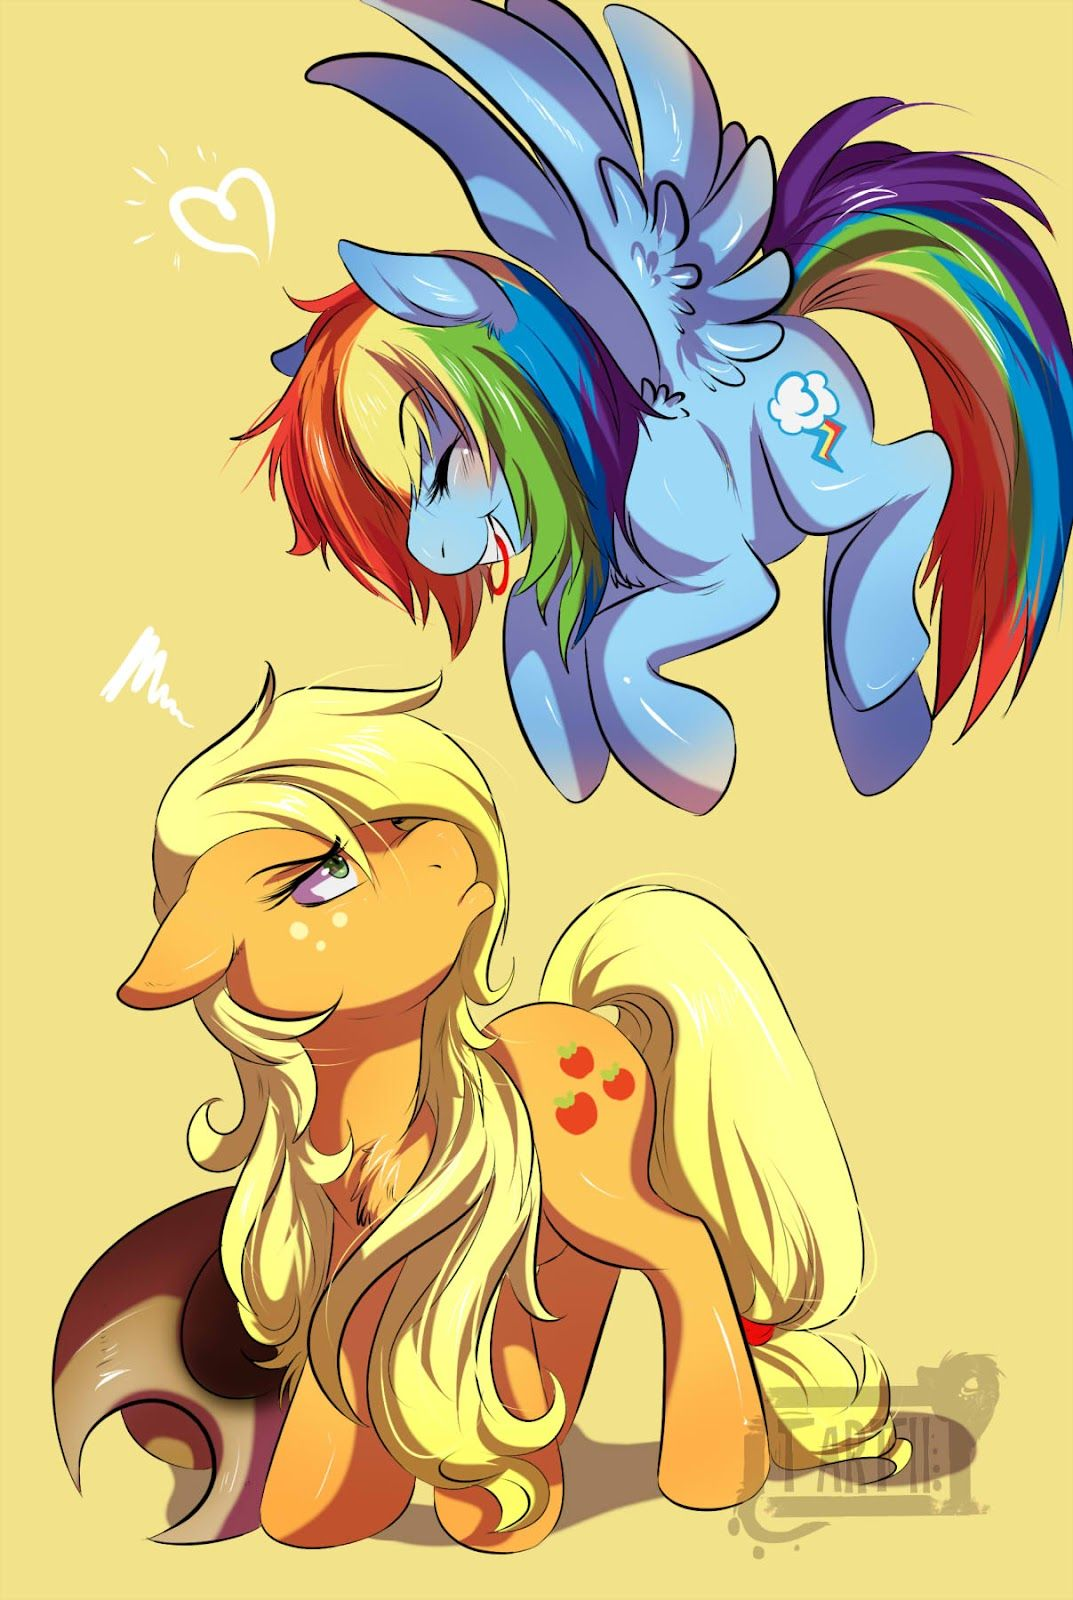 Trolling Rainbow Dash. XD I have to say though that AJ looks good ...